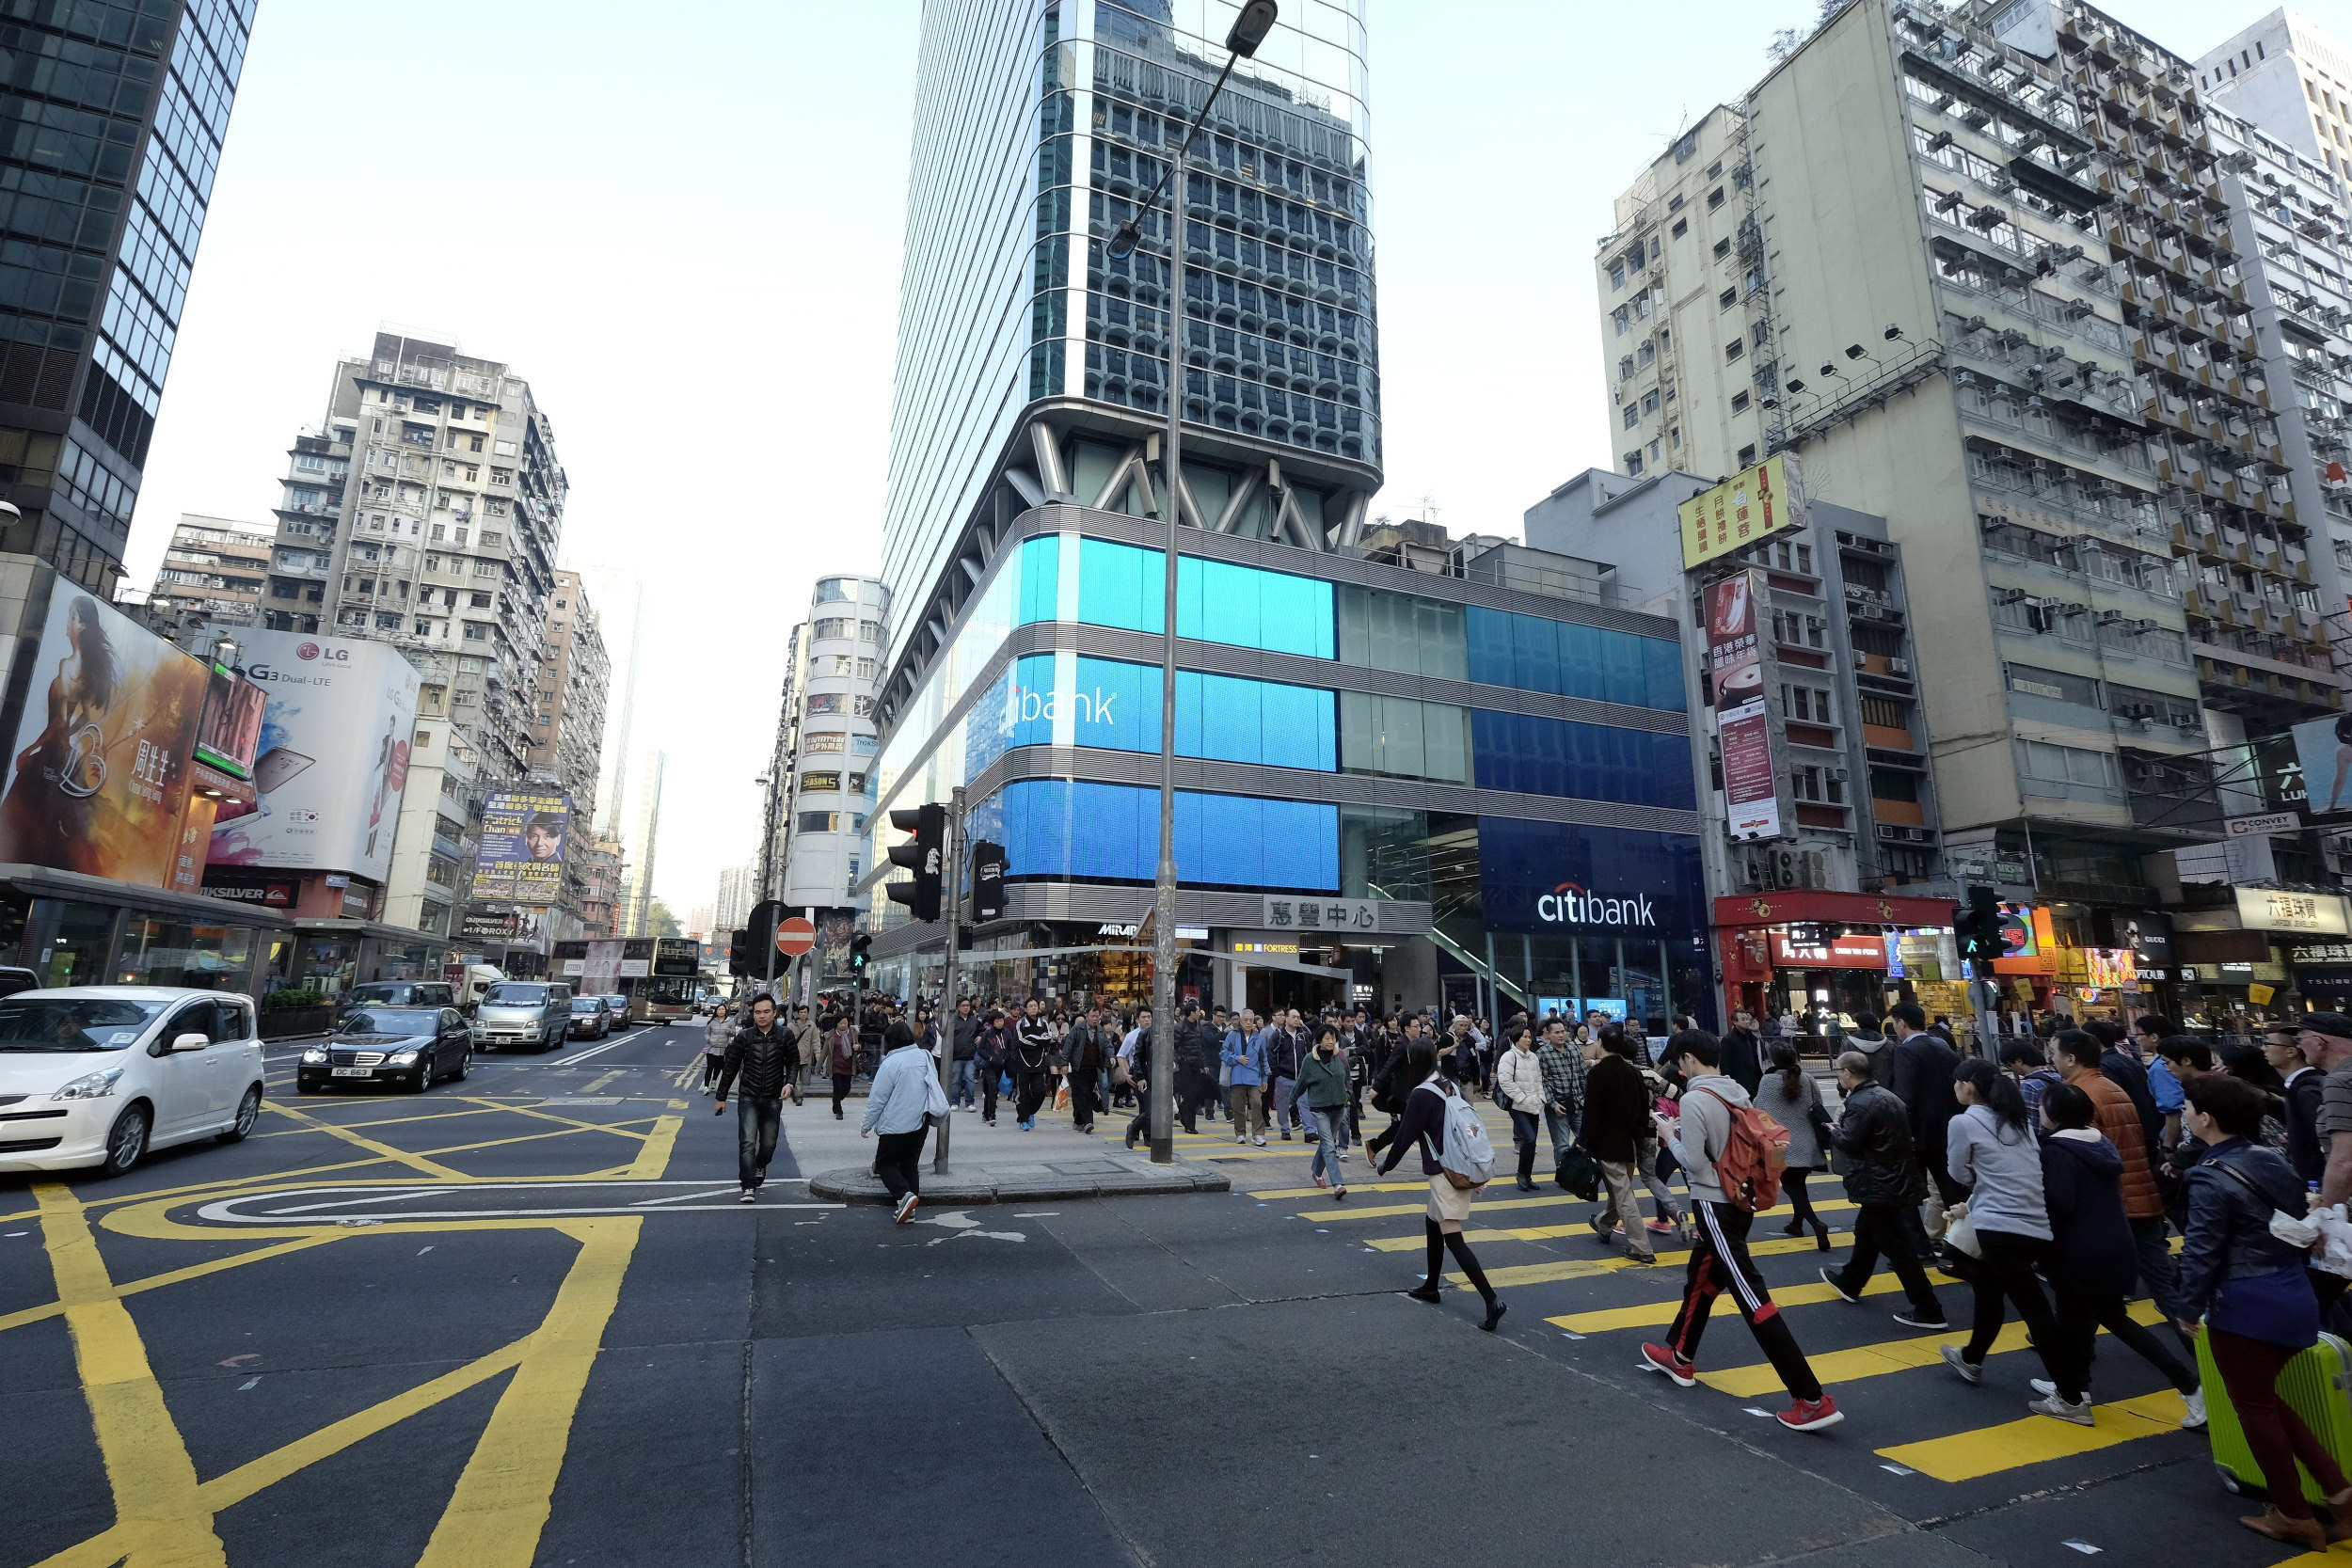 Hong Kong Kowloon Straatbeeld Drukte Citibank